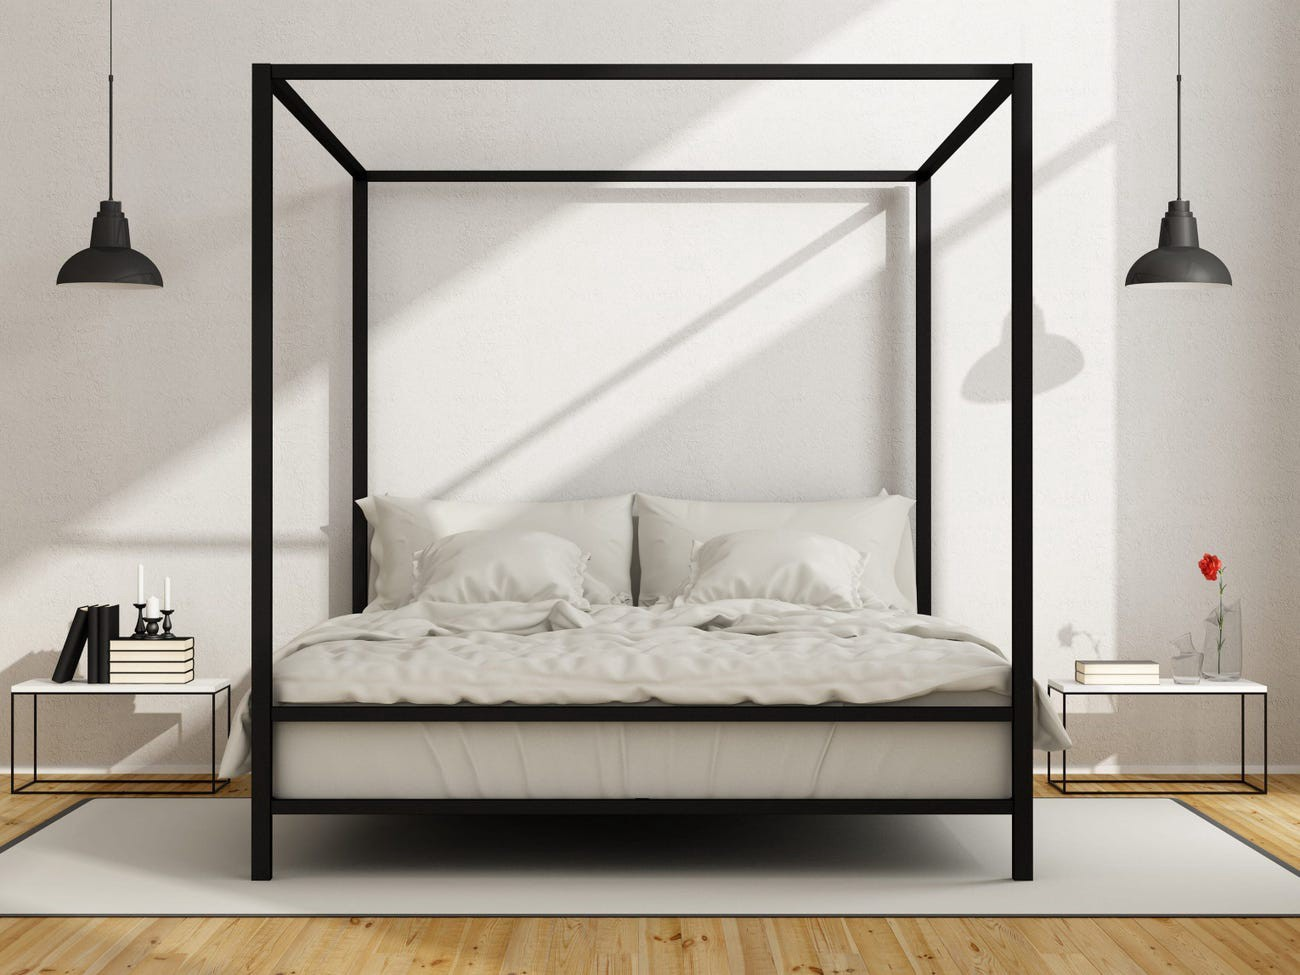 A bed with an iron frame.